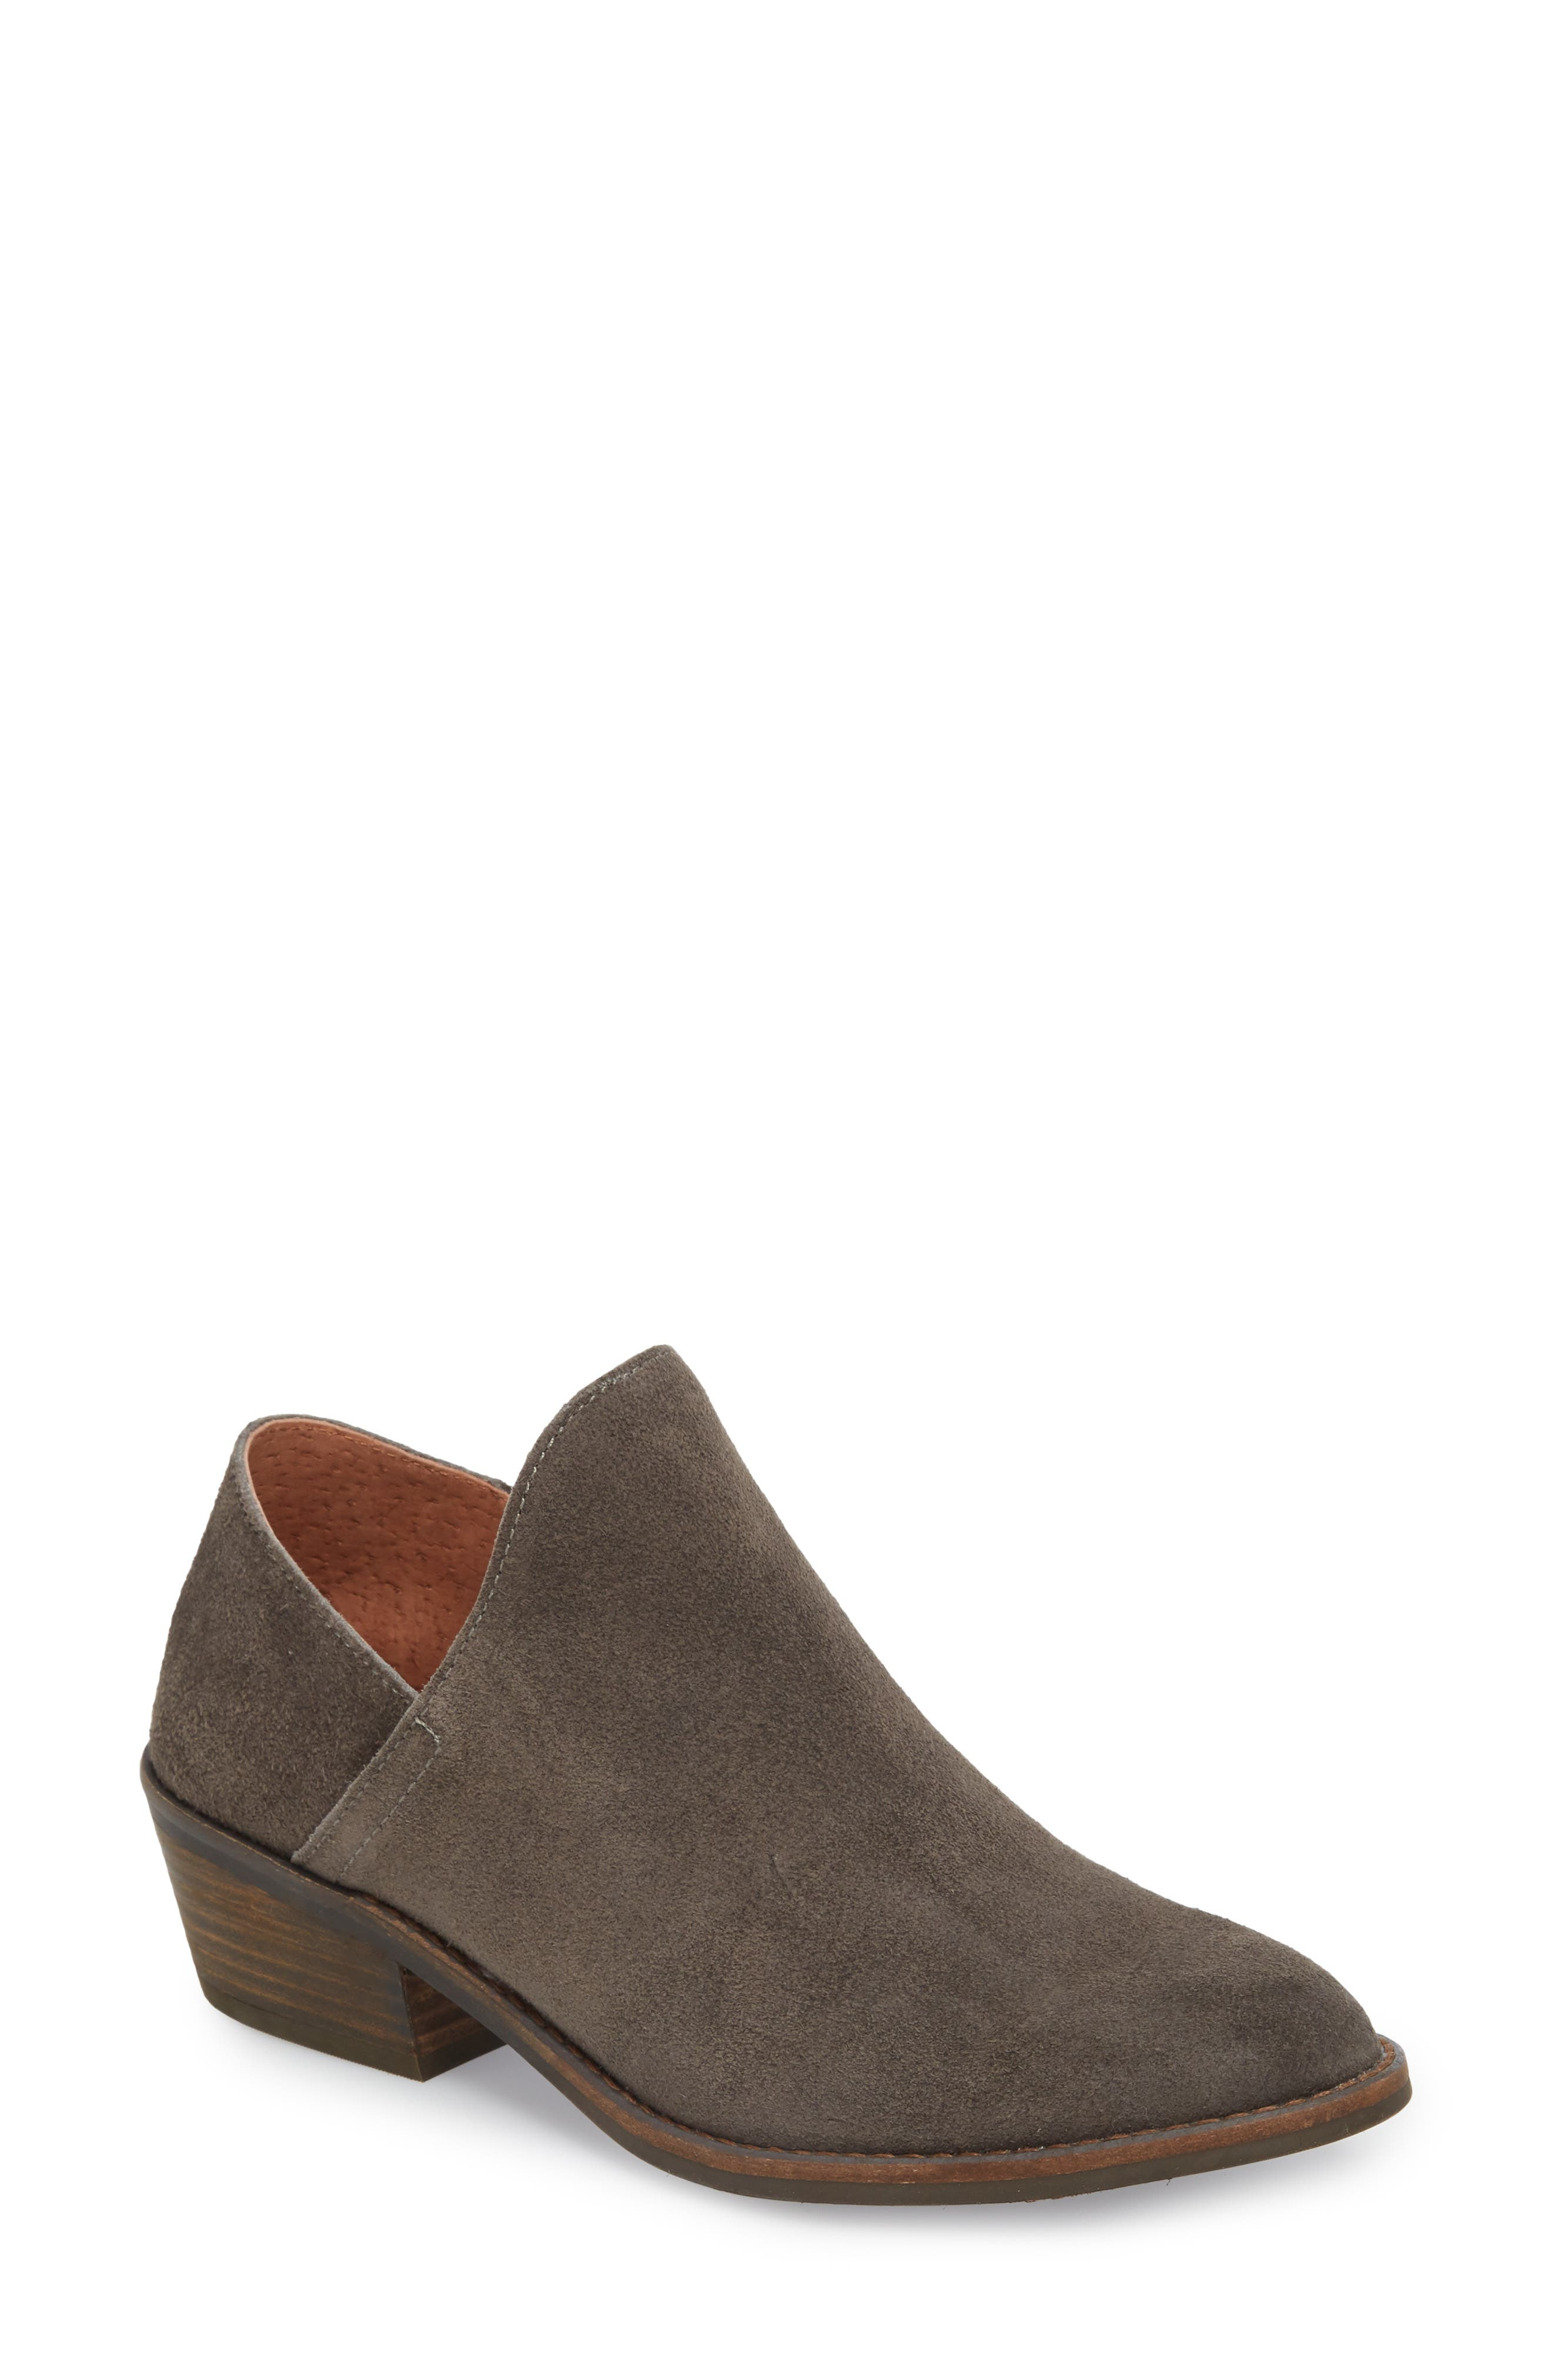 Fausst Bootie,                             Main thumbnail 1, color,                             PERISCOPE LEATHER